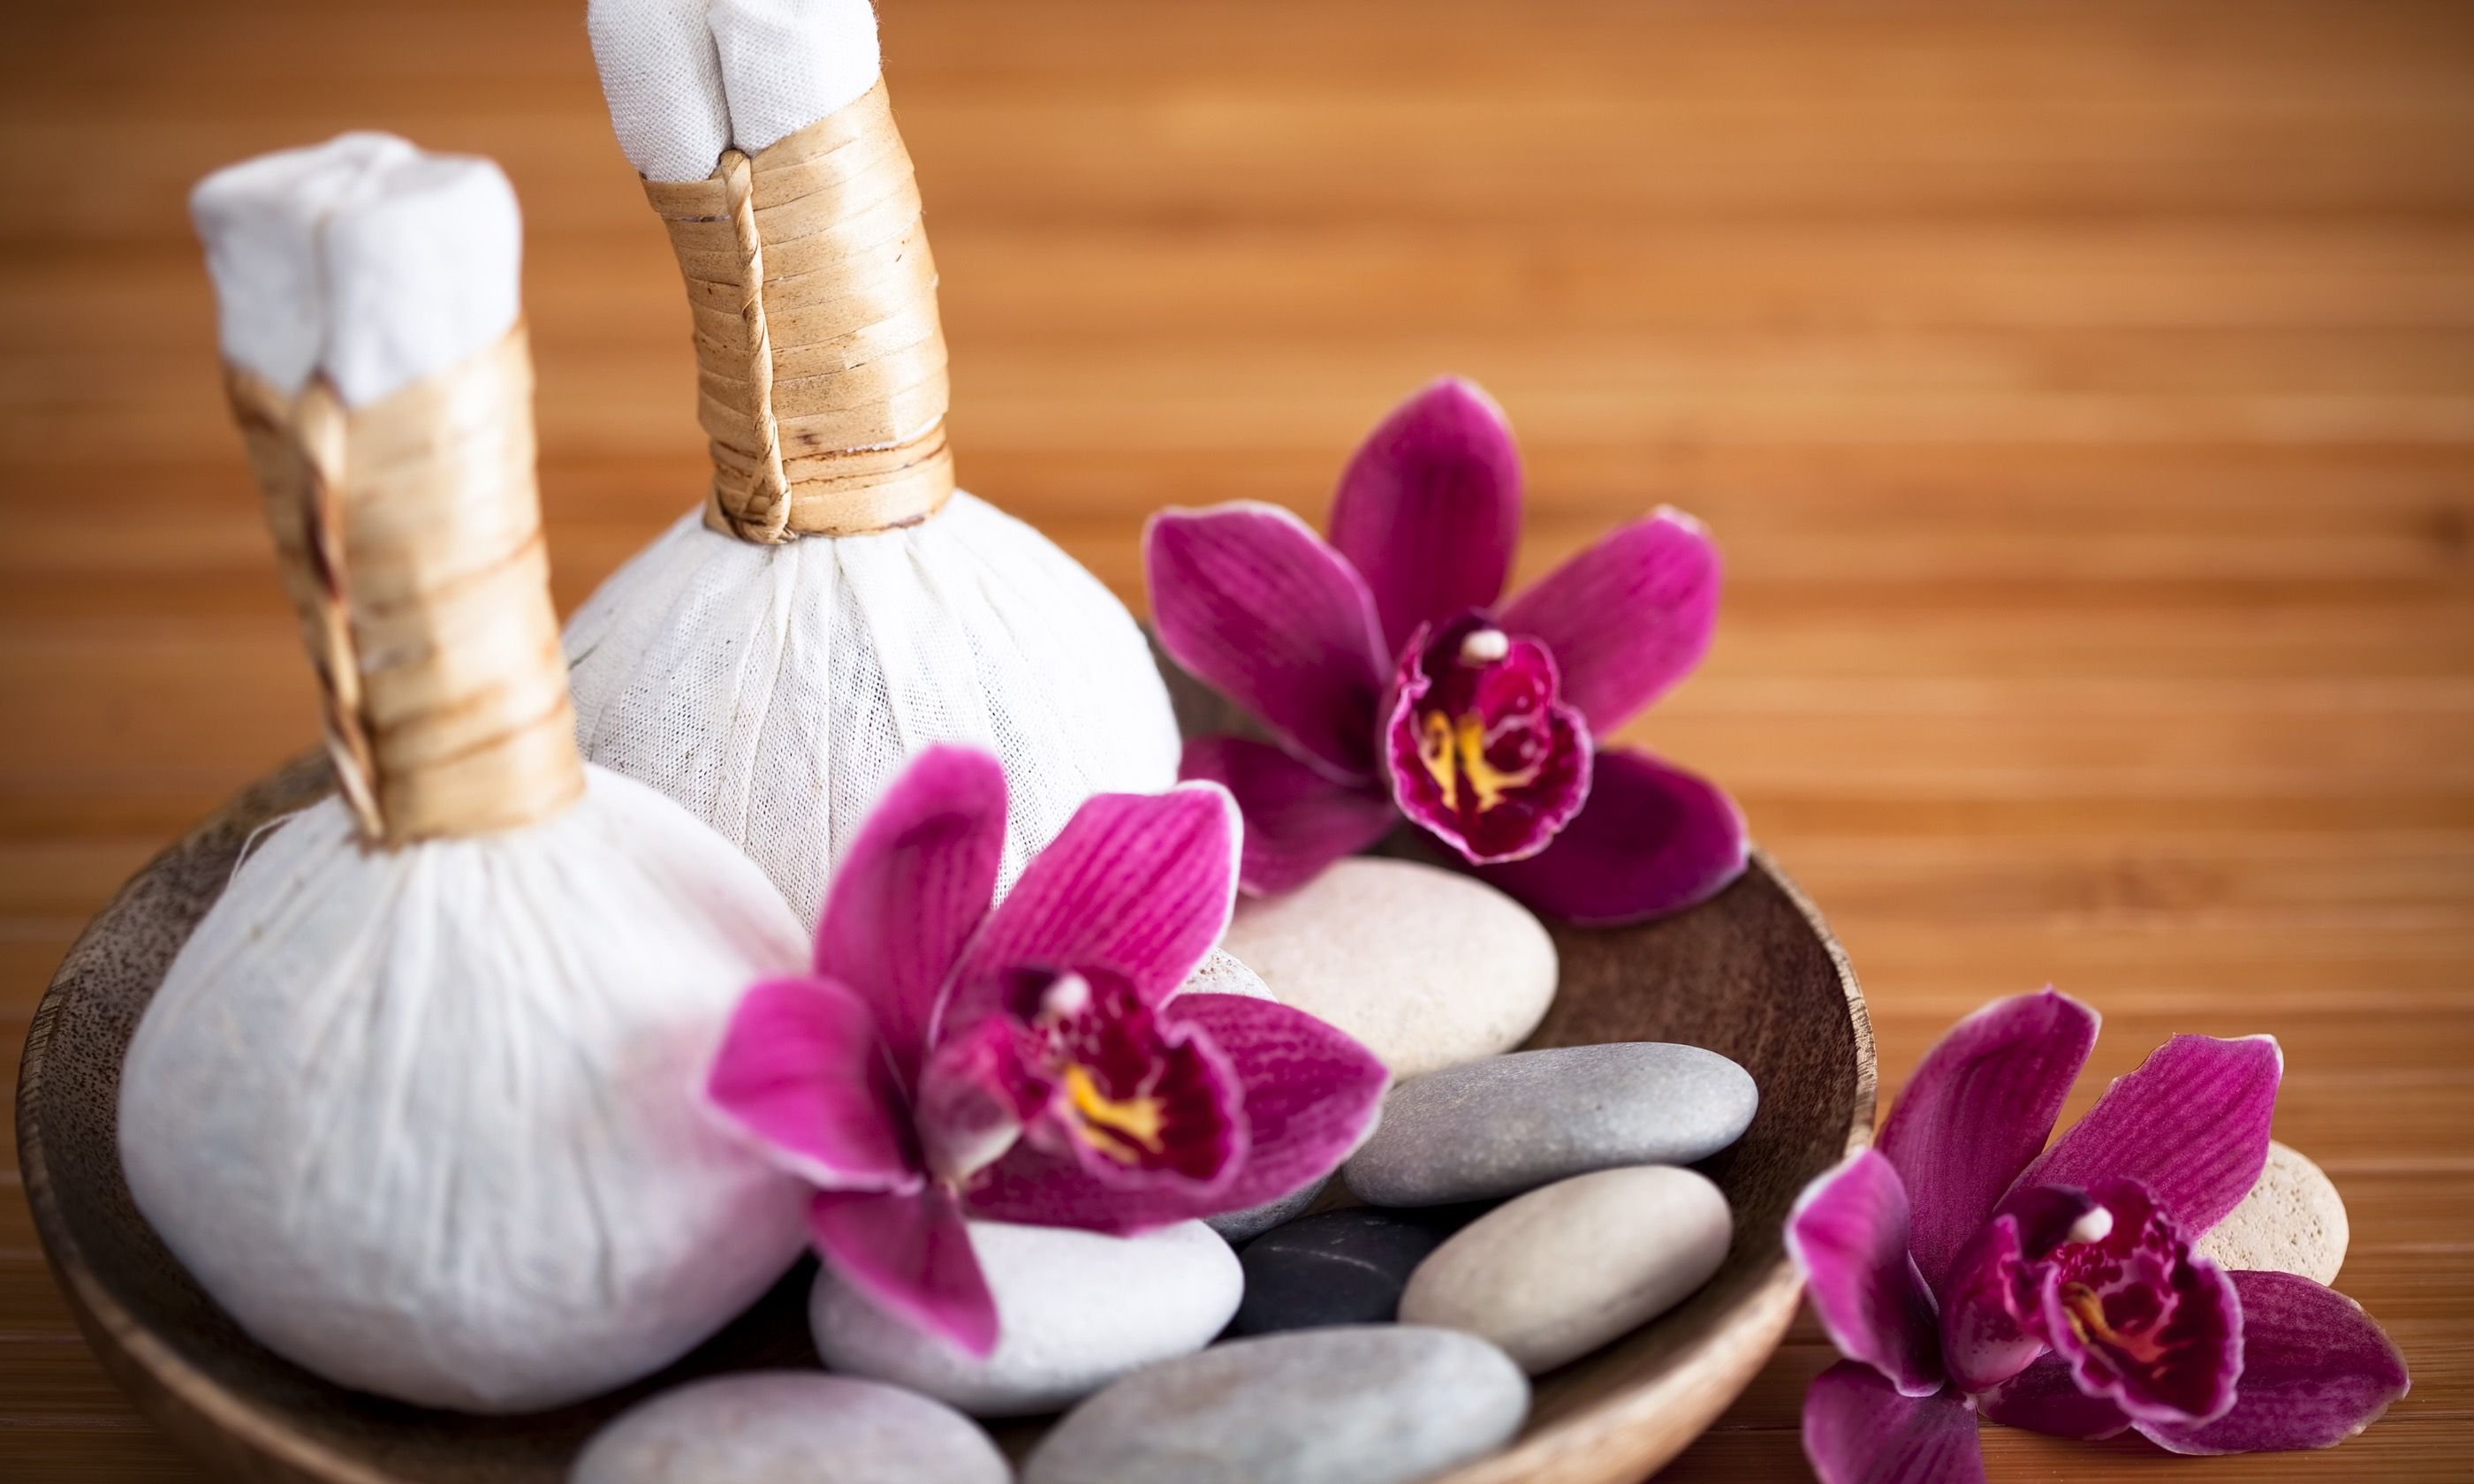 Herbal massage compresses in Thailand (Dreamstime)